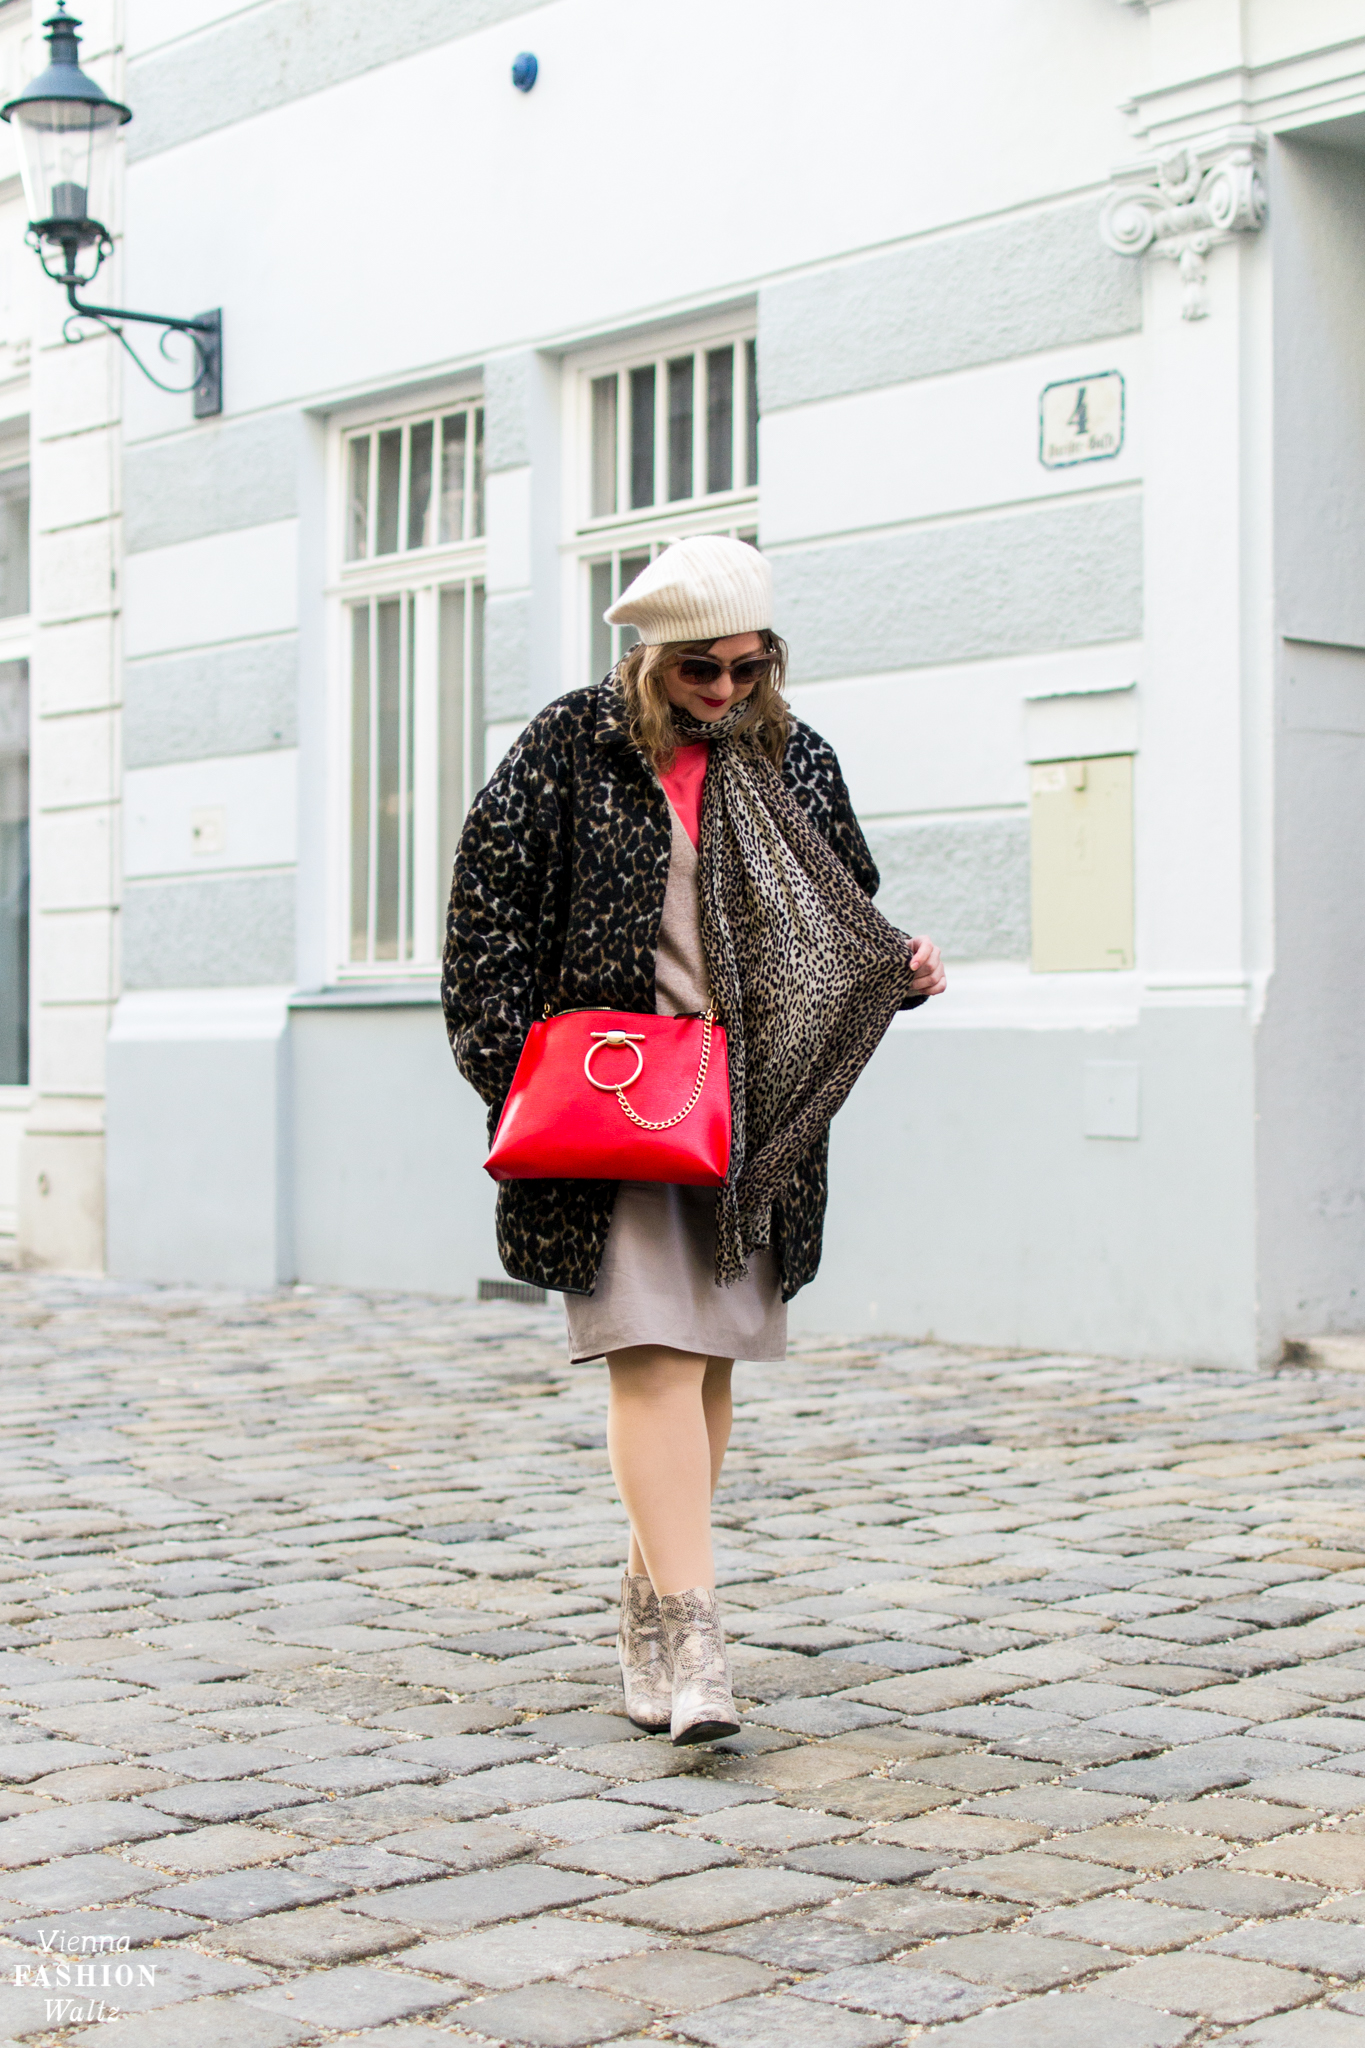 Midirock Outfit in Rot & Beige mit Animalprint und roter Tasche von Deichmann, H&M Kaschmir Mütze, Animal Boots, Midirock Outfit in Rot & Beige mit Animalprint, Fashiontrends, Blogger, Leoprint, Schlangenmuster, all beige outfit, Mode für Frauen, Fashion, Style, Trends www.viennafashionwaltz.com